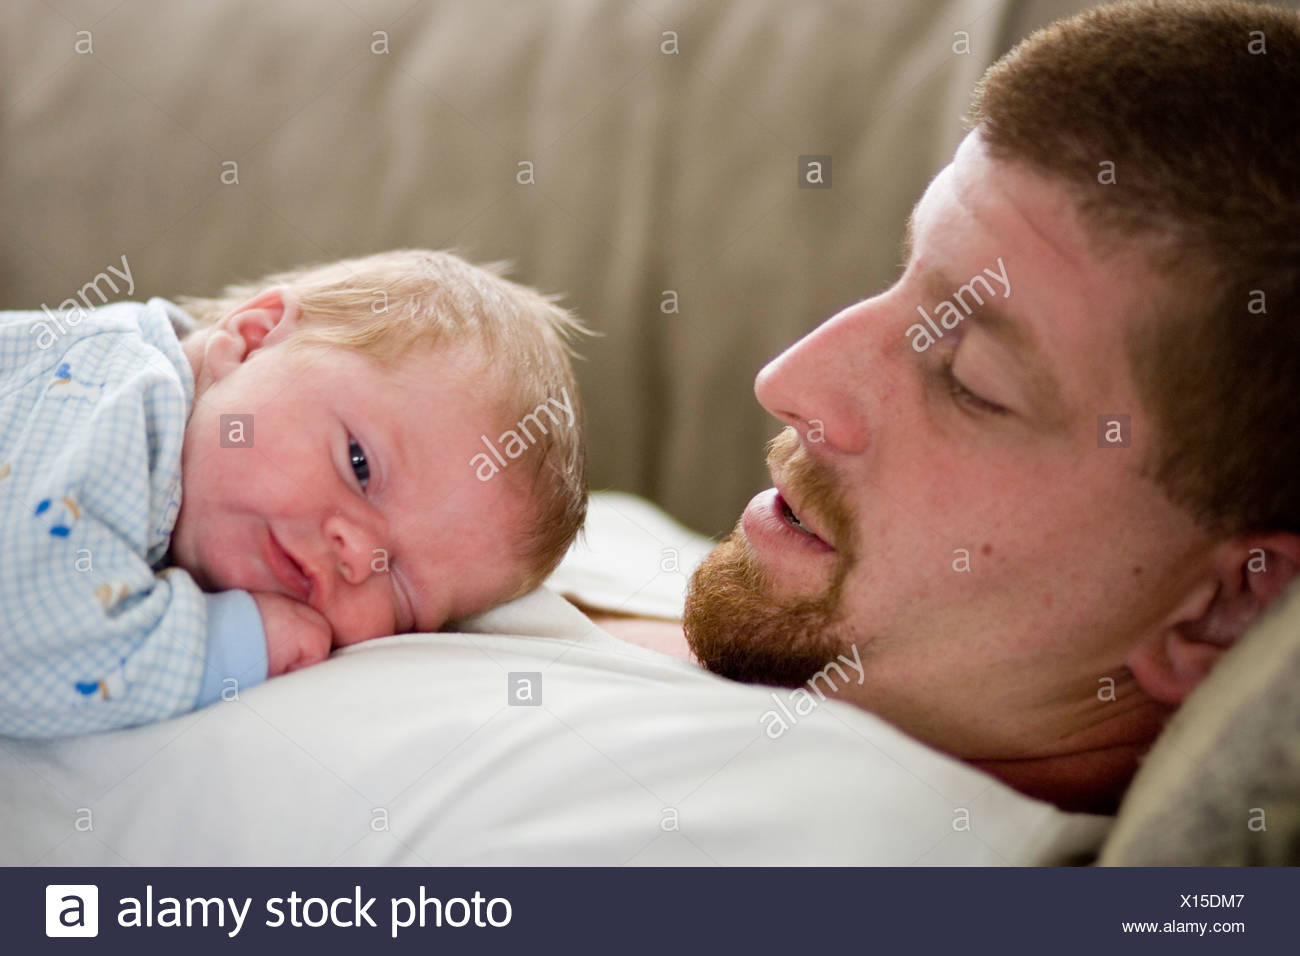 A infant boy and his father bonding. - Stock Image